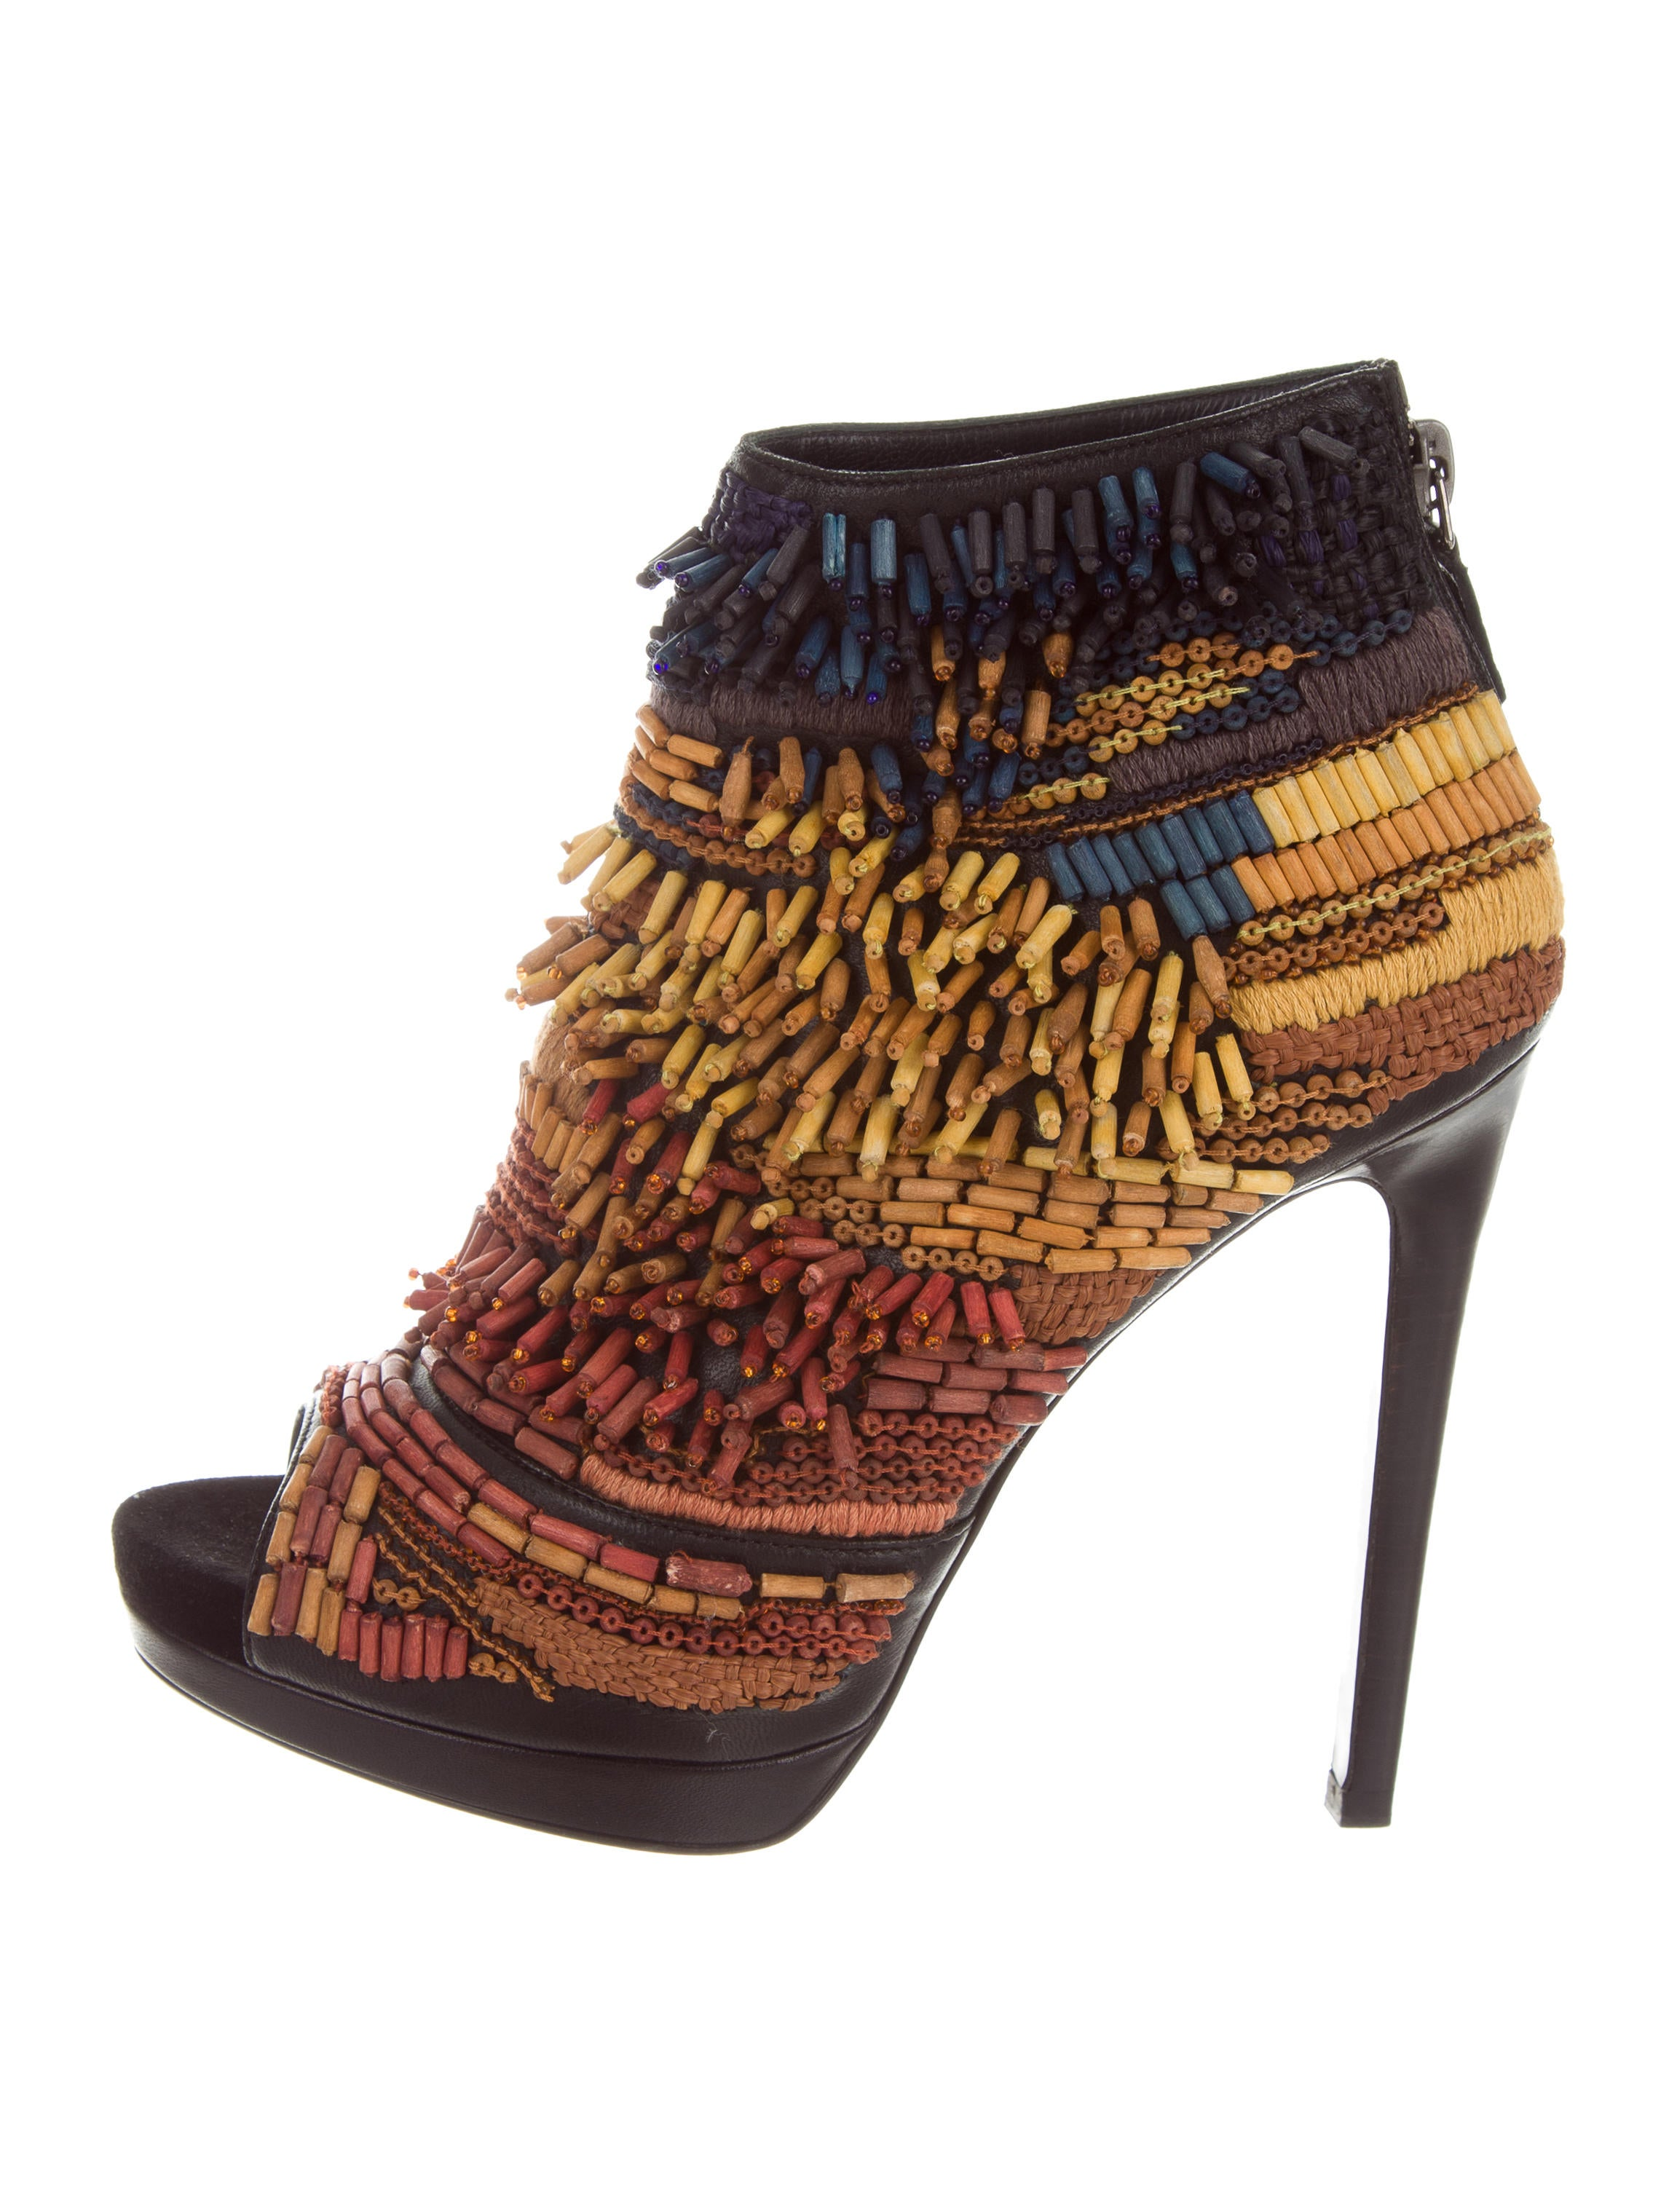 Barbara Bui Embellished Peep-Toe Ankle Boots outlet really many kinds of sale online clearance 100% original buy cheap manchester great sale erlYdTO